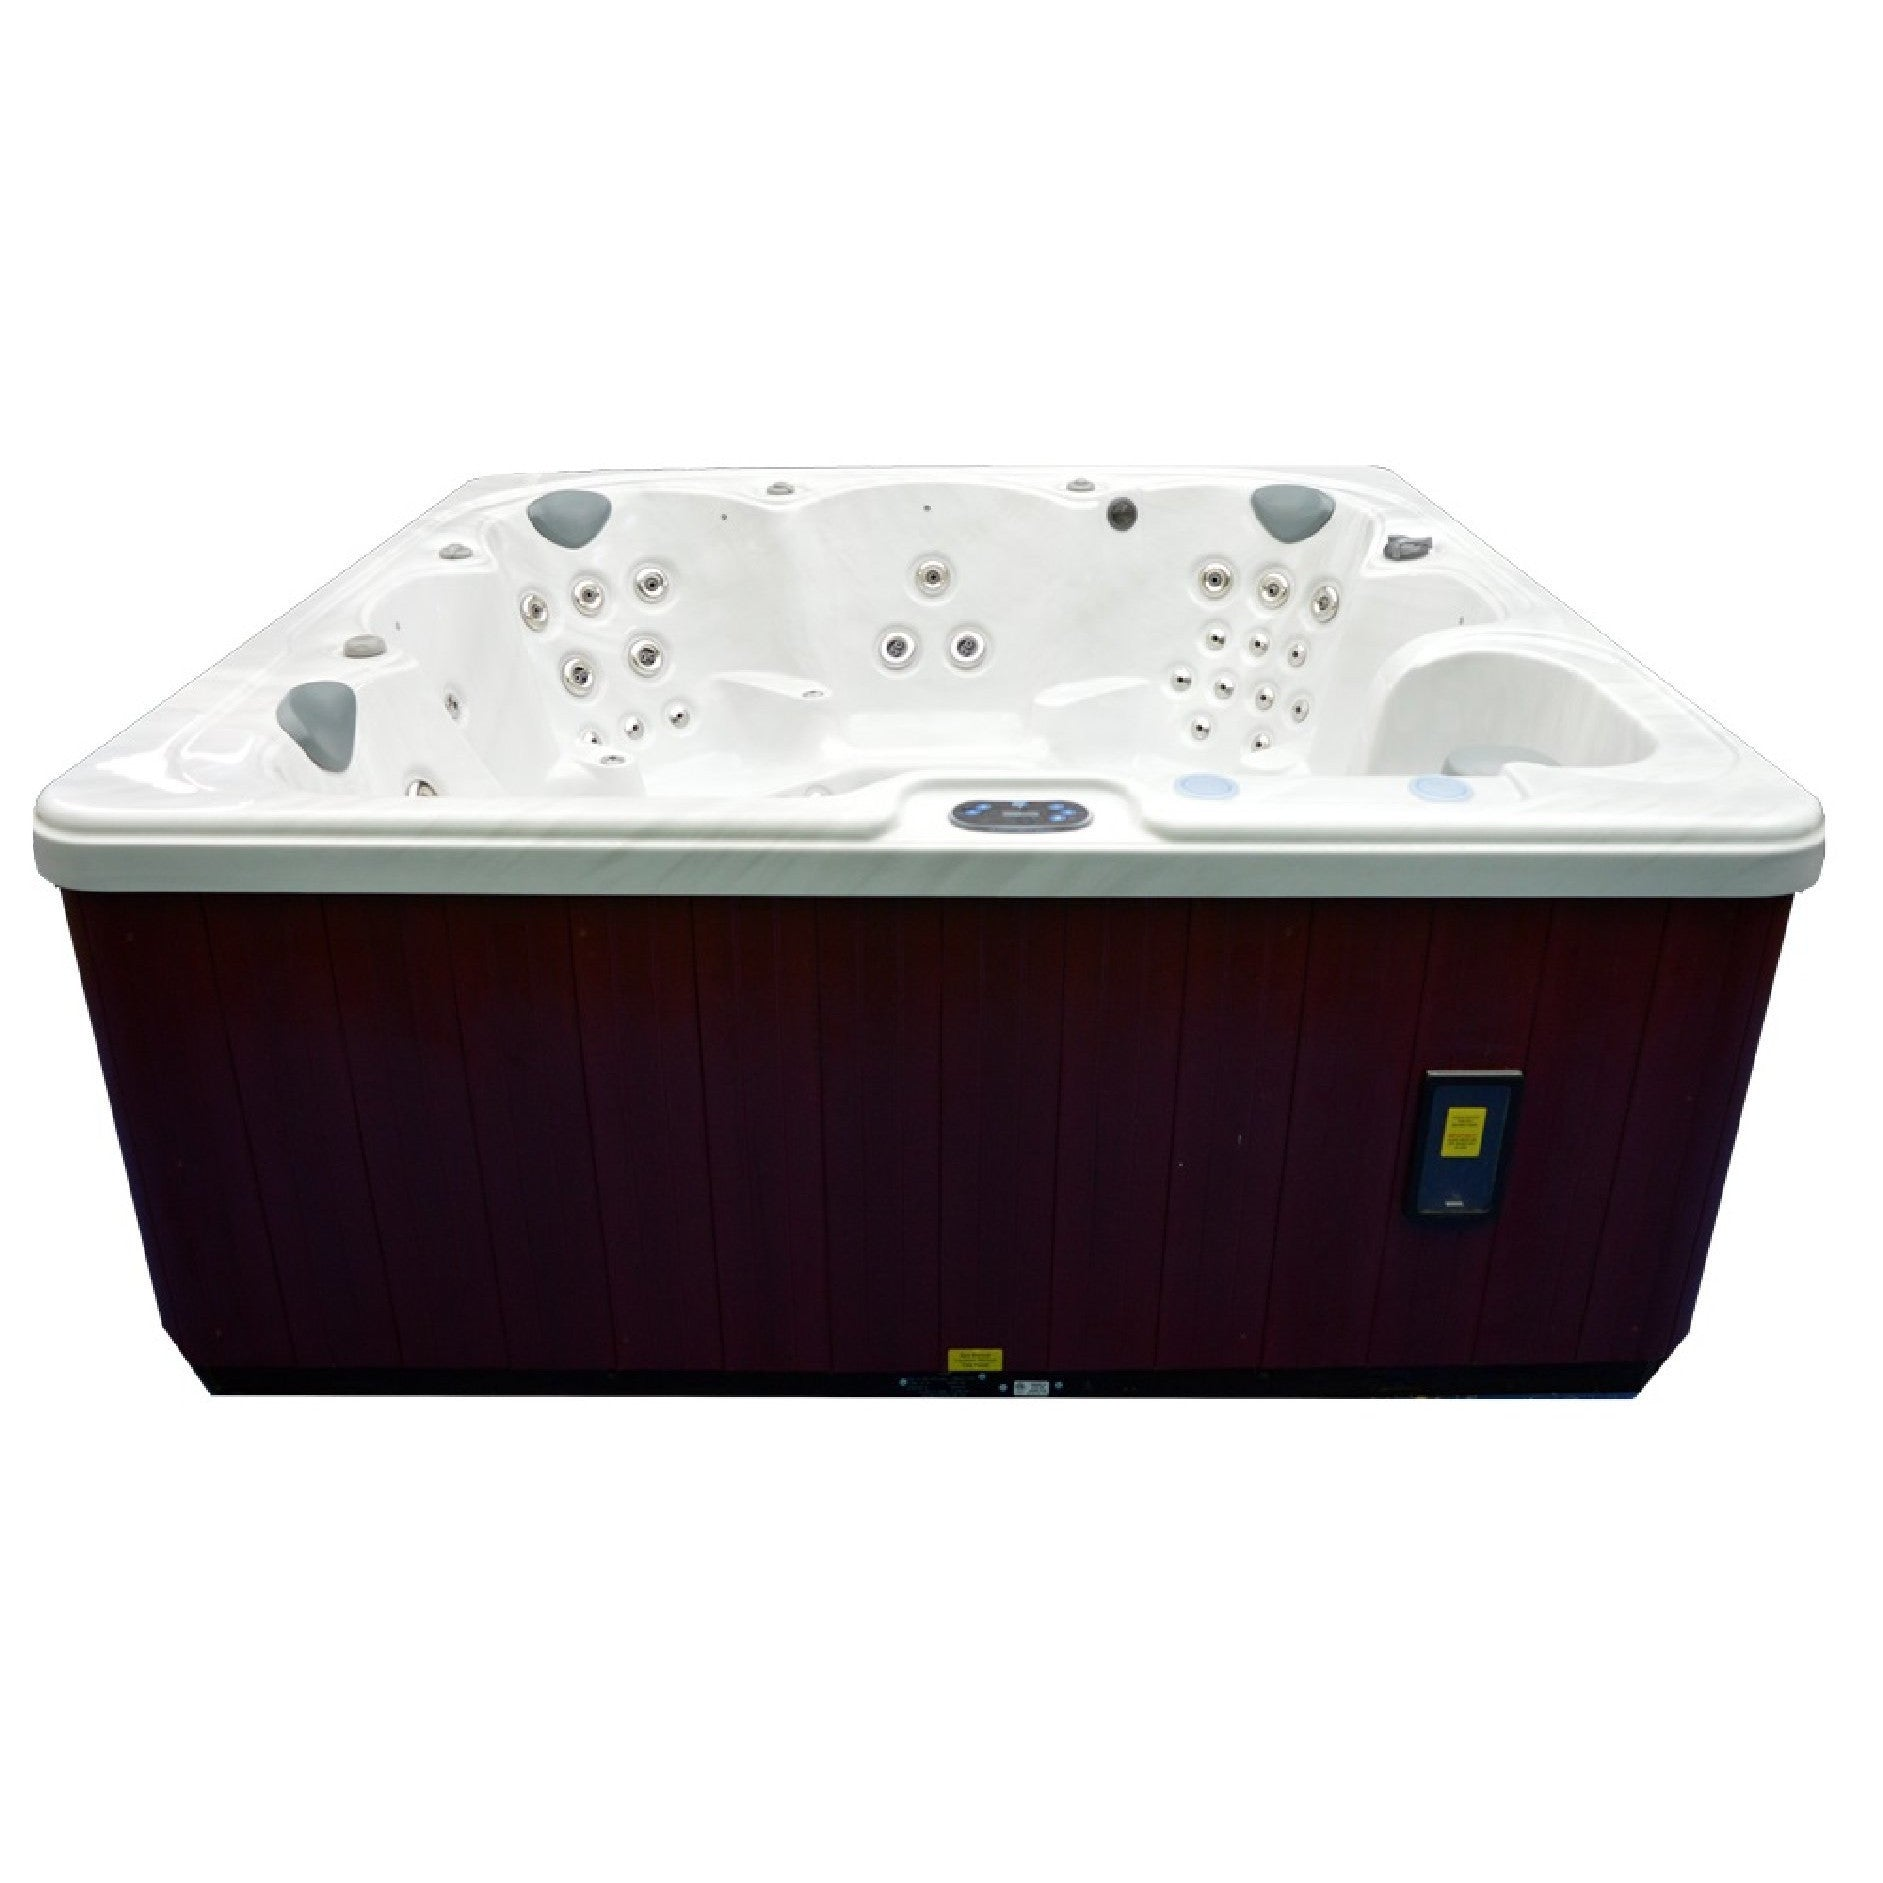 ... 6 Person 90 Jet Spa With MP3 Auxiliary Output By Home And Garden Spas  ...